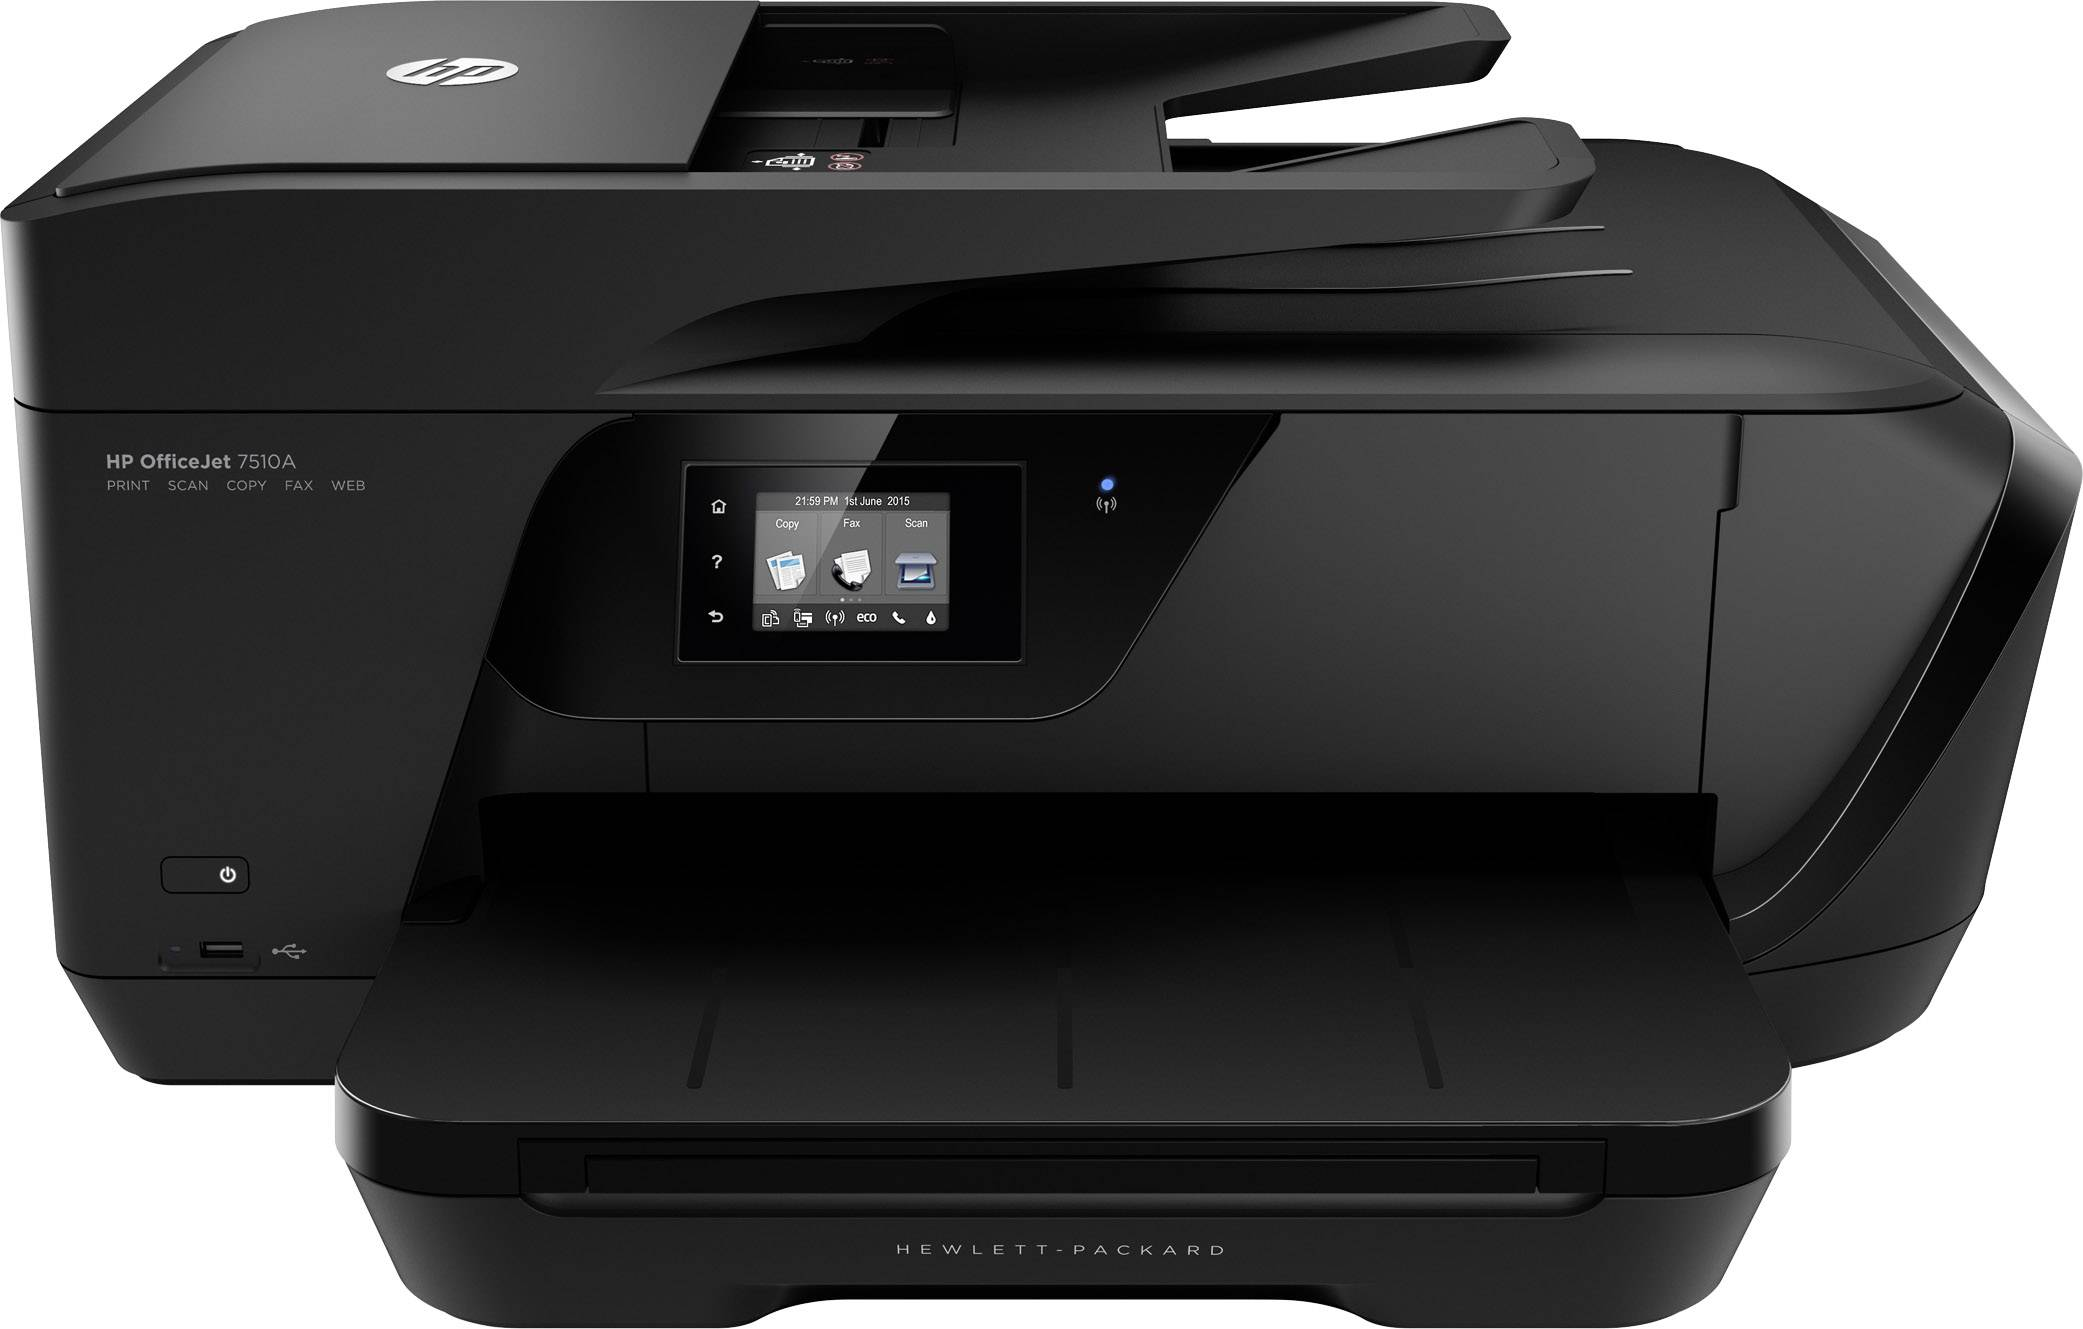 Hp officejet 520 Manual